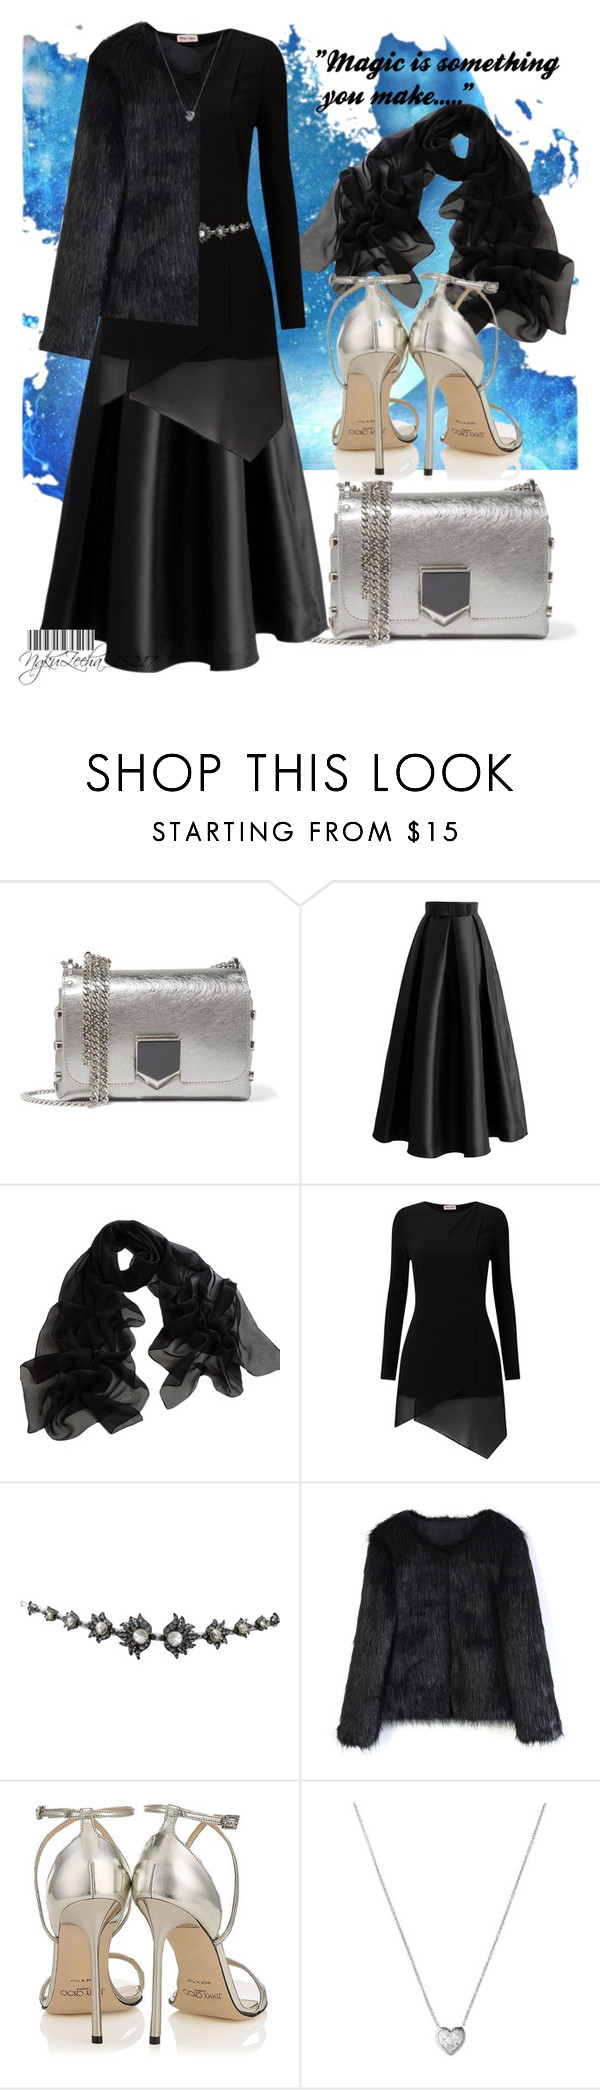 """""""BLACK DRESS!! ◼"""" by ngku-zeeha ❤ liked on Polyvore featuring Jimmy Choo, Chicwish, Phase Eight, Lanvin and Links of London"""